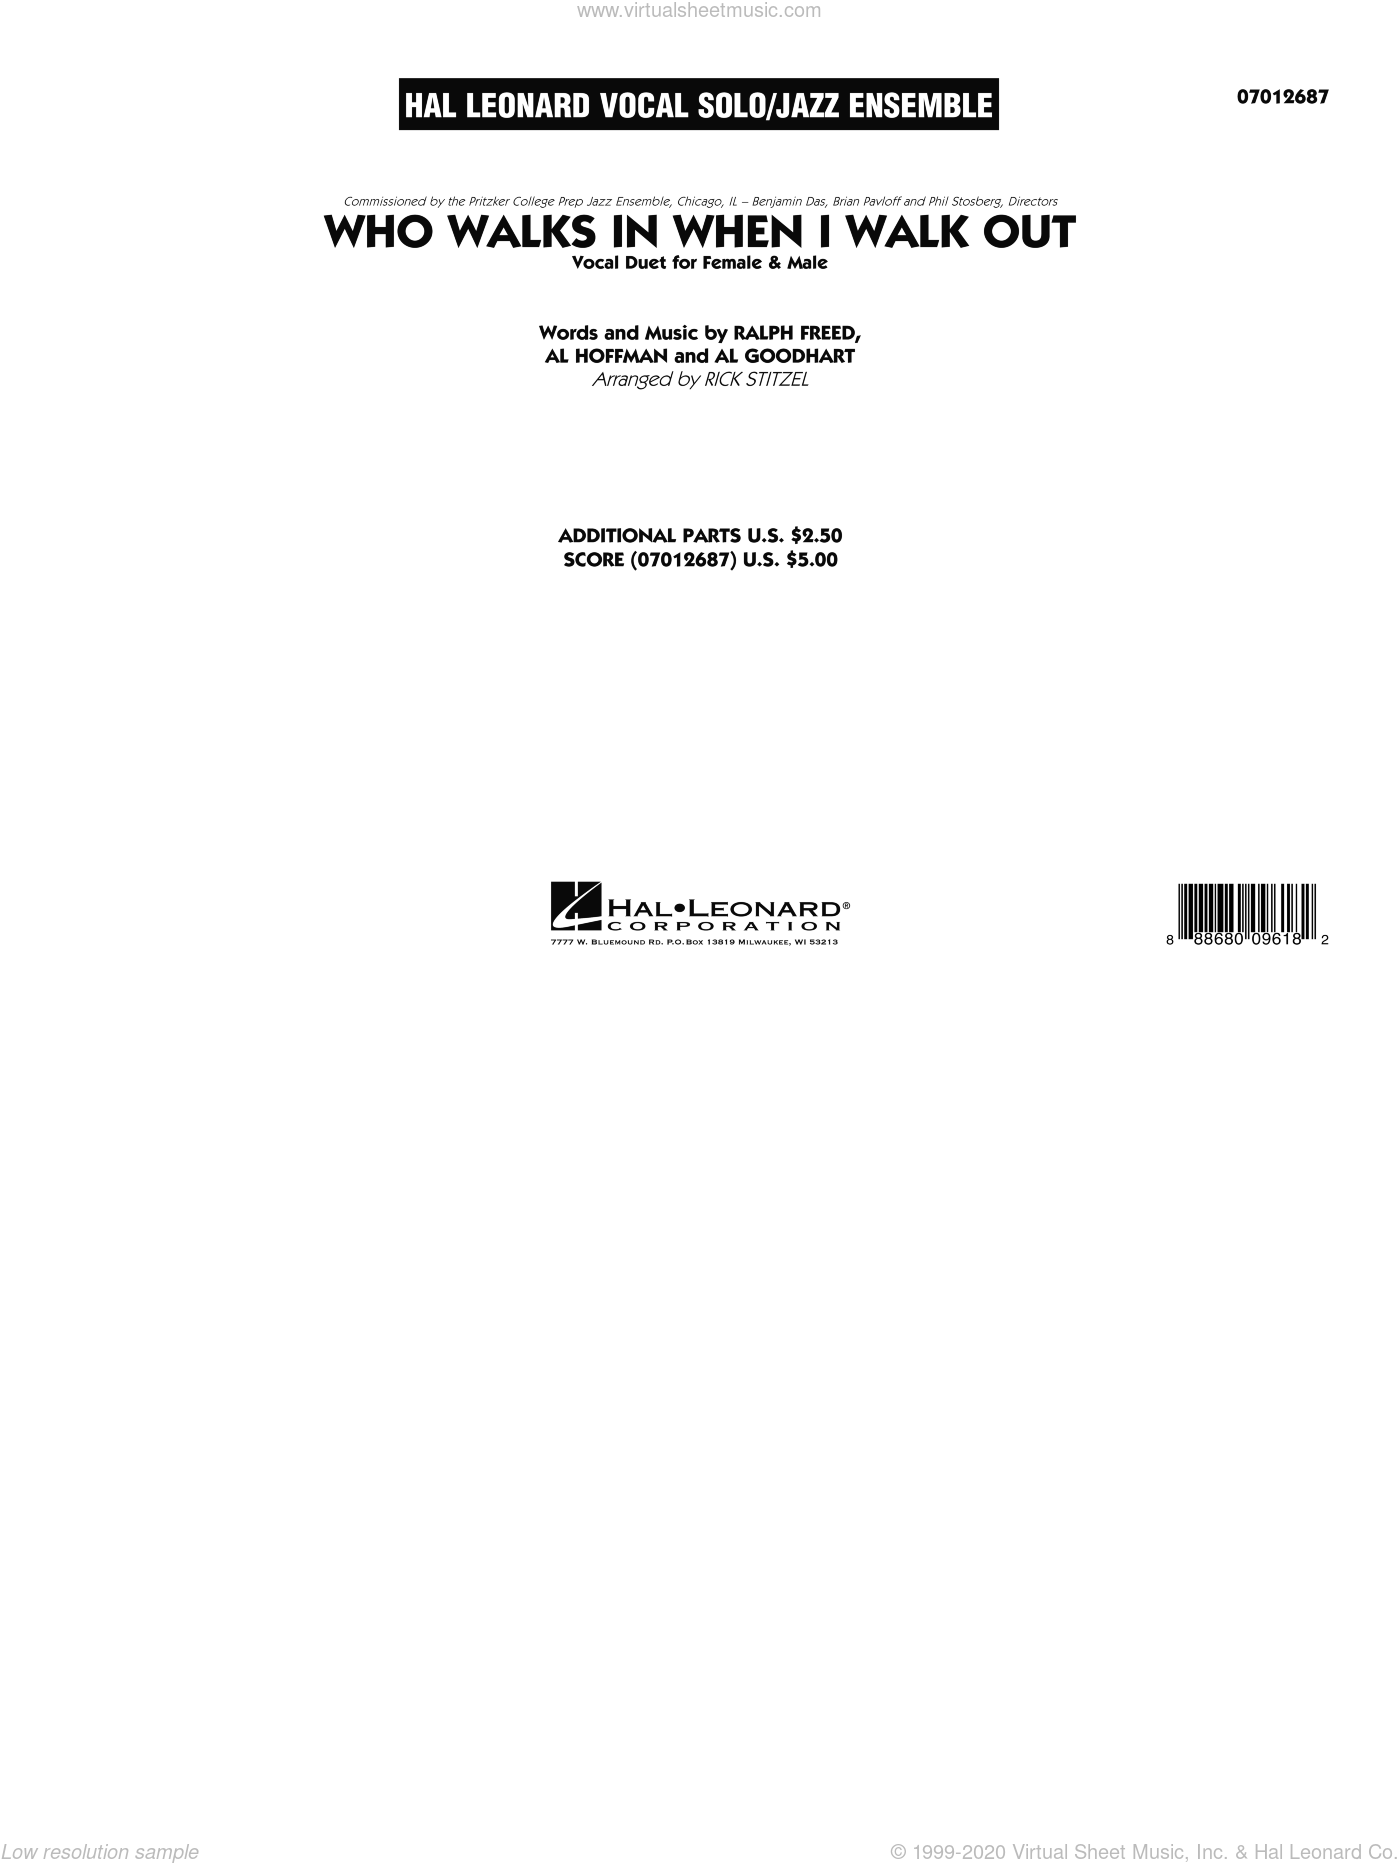 Who Walks In When I Walk Out? (Key: D minor) sheet music for jazz band (full score) by Al Hoffman, Rick Stitzel, Ella Fitzgerald, Louis Armstrong, Al Goodhart and Ralph Freed, intermediate skill level